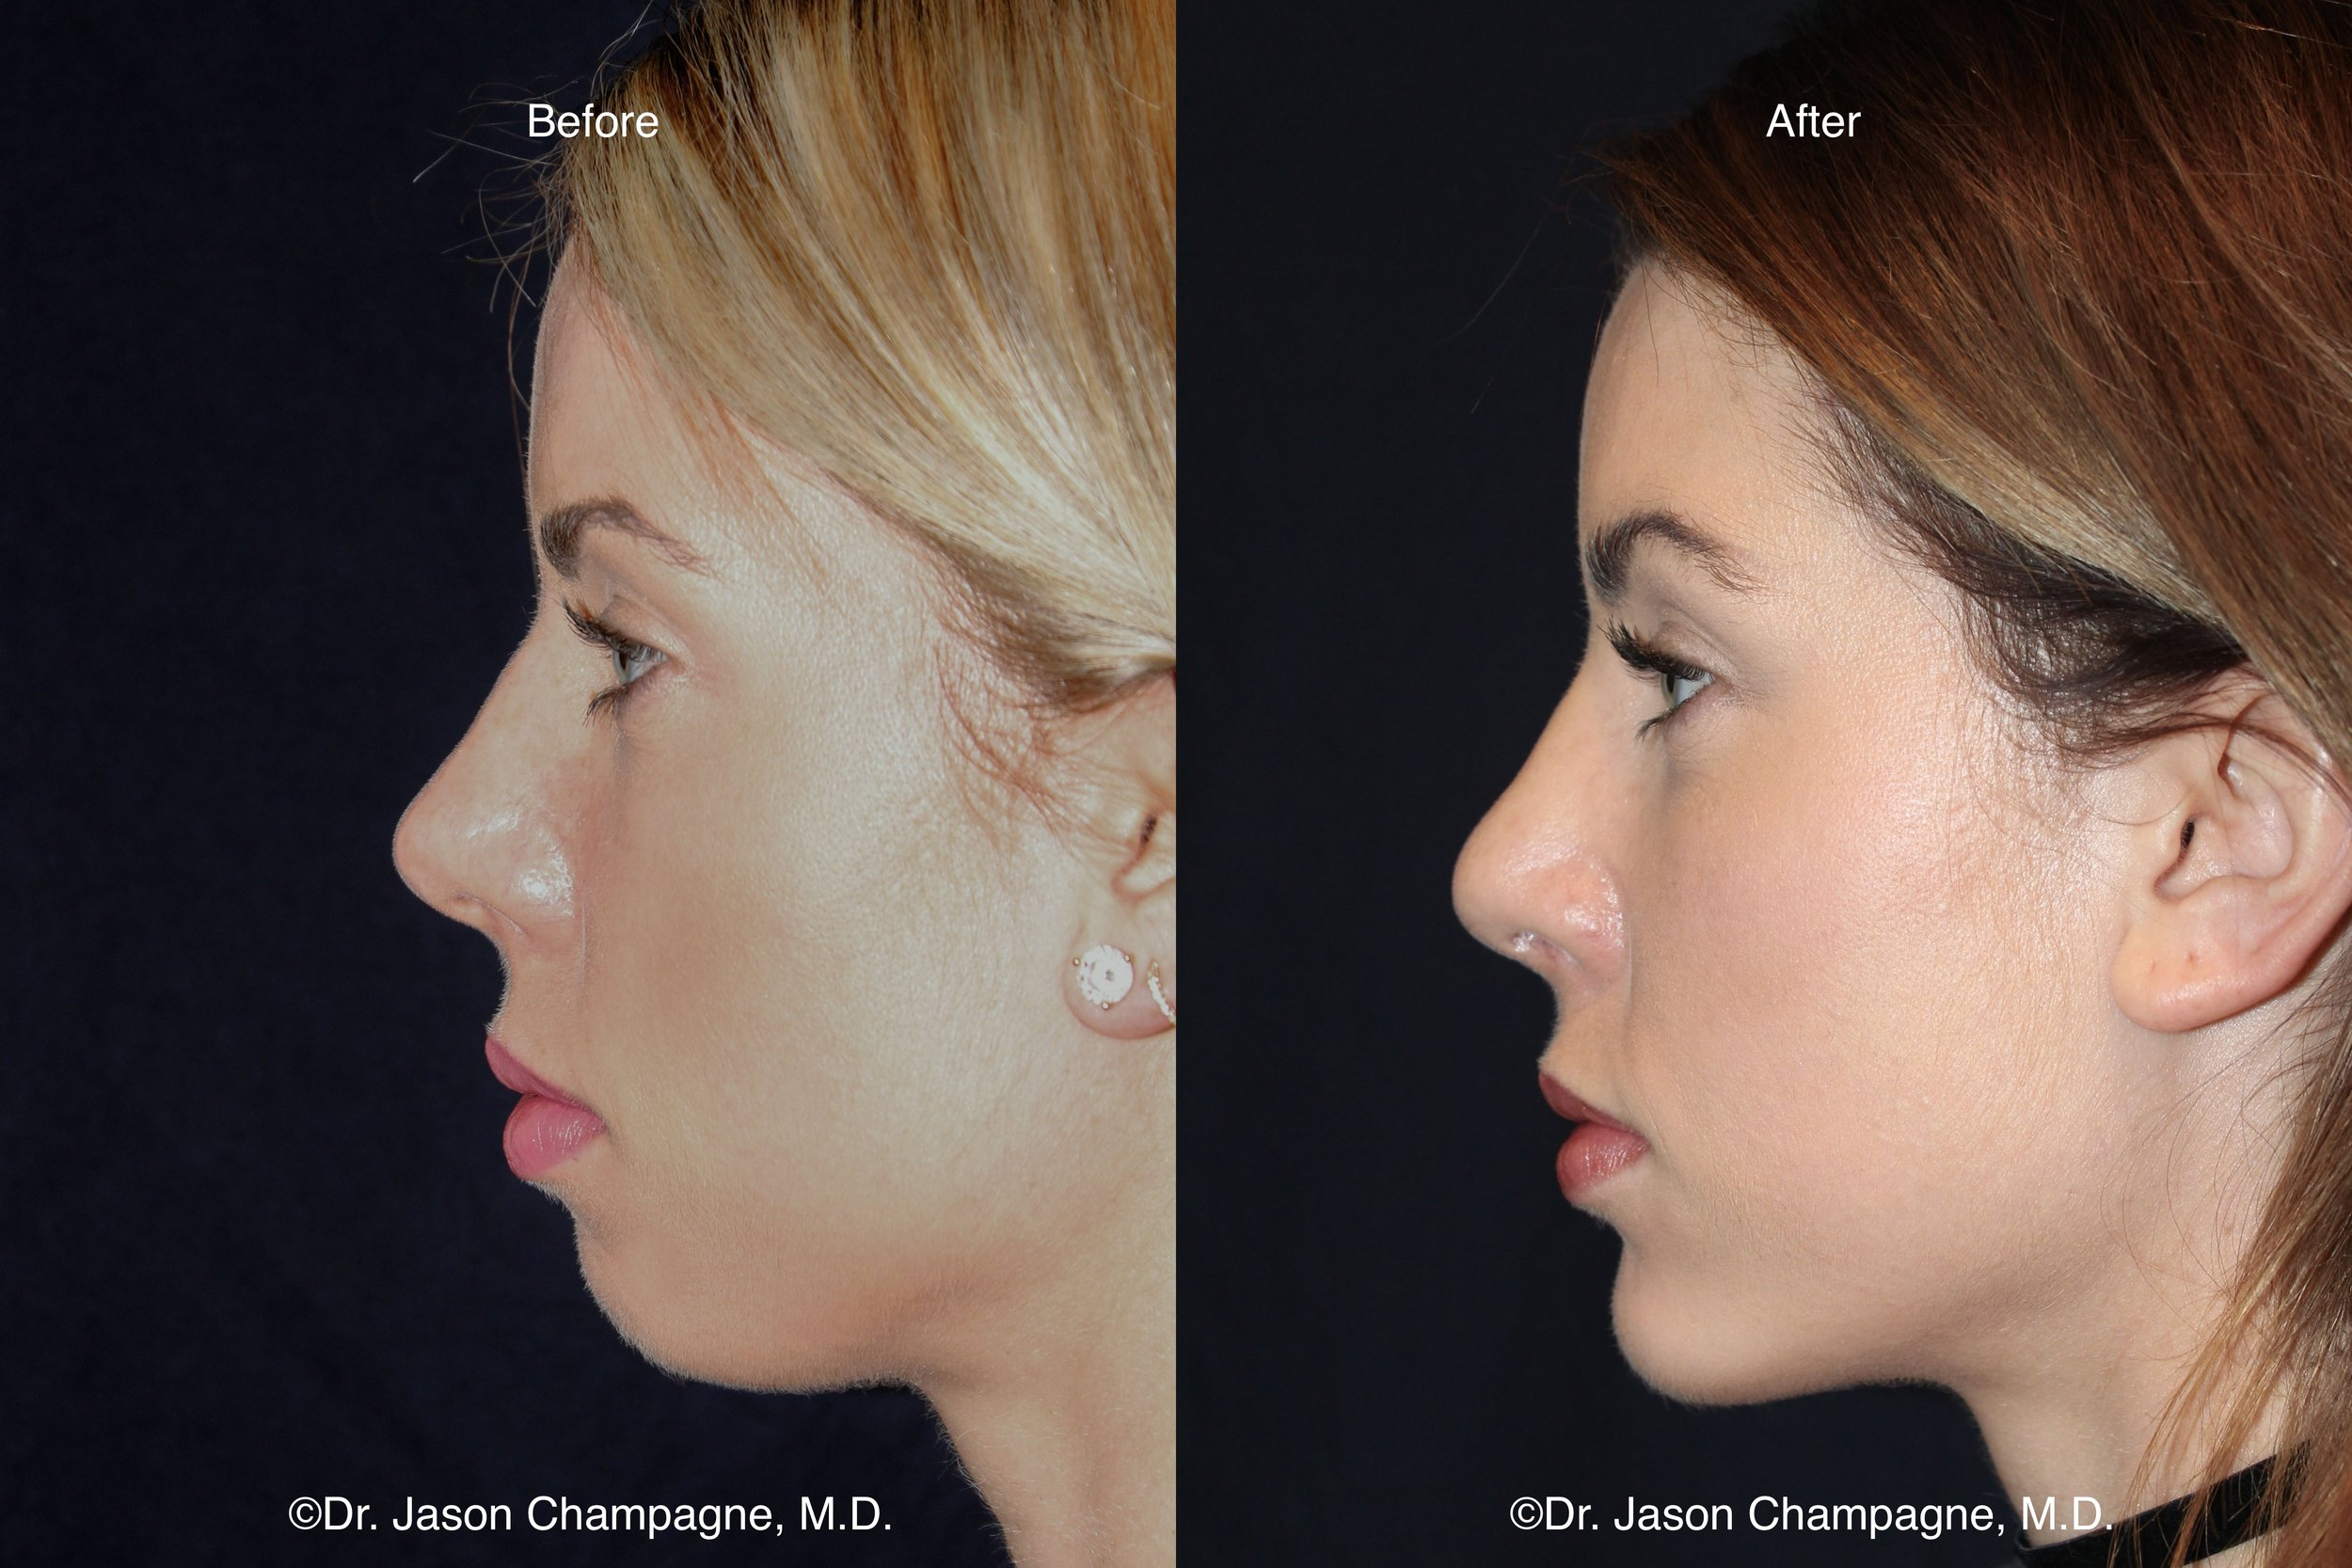 Jason Champagne Beverly Hills Facial Plastic Surgery Chin Implant Profile Before and After